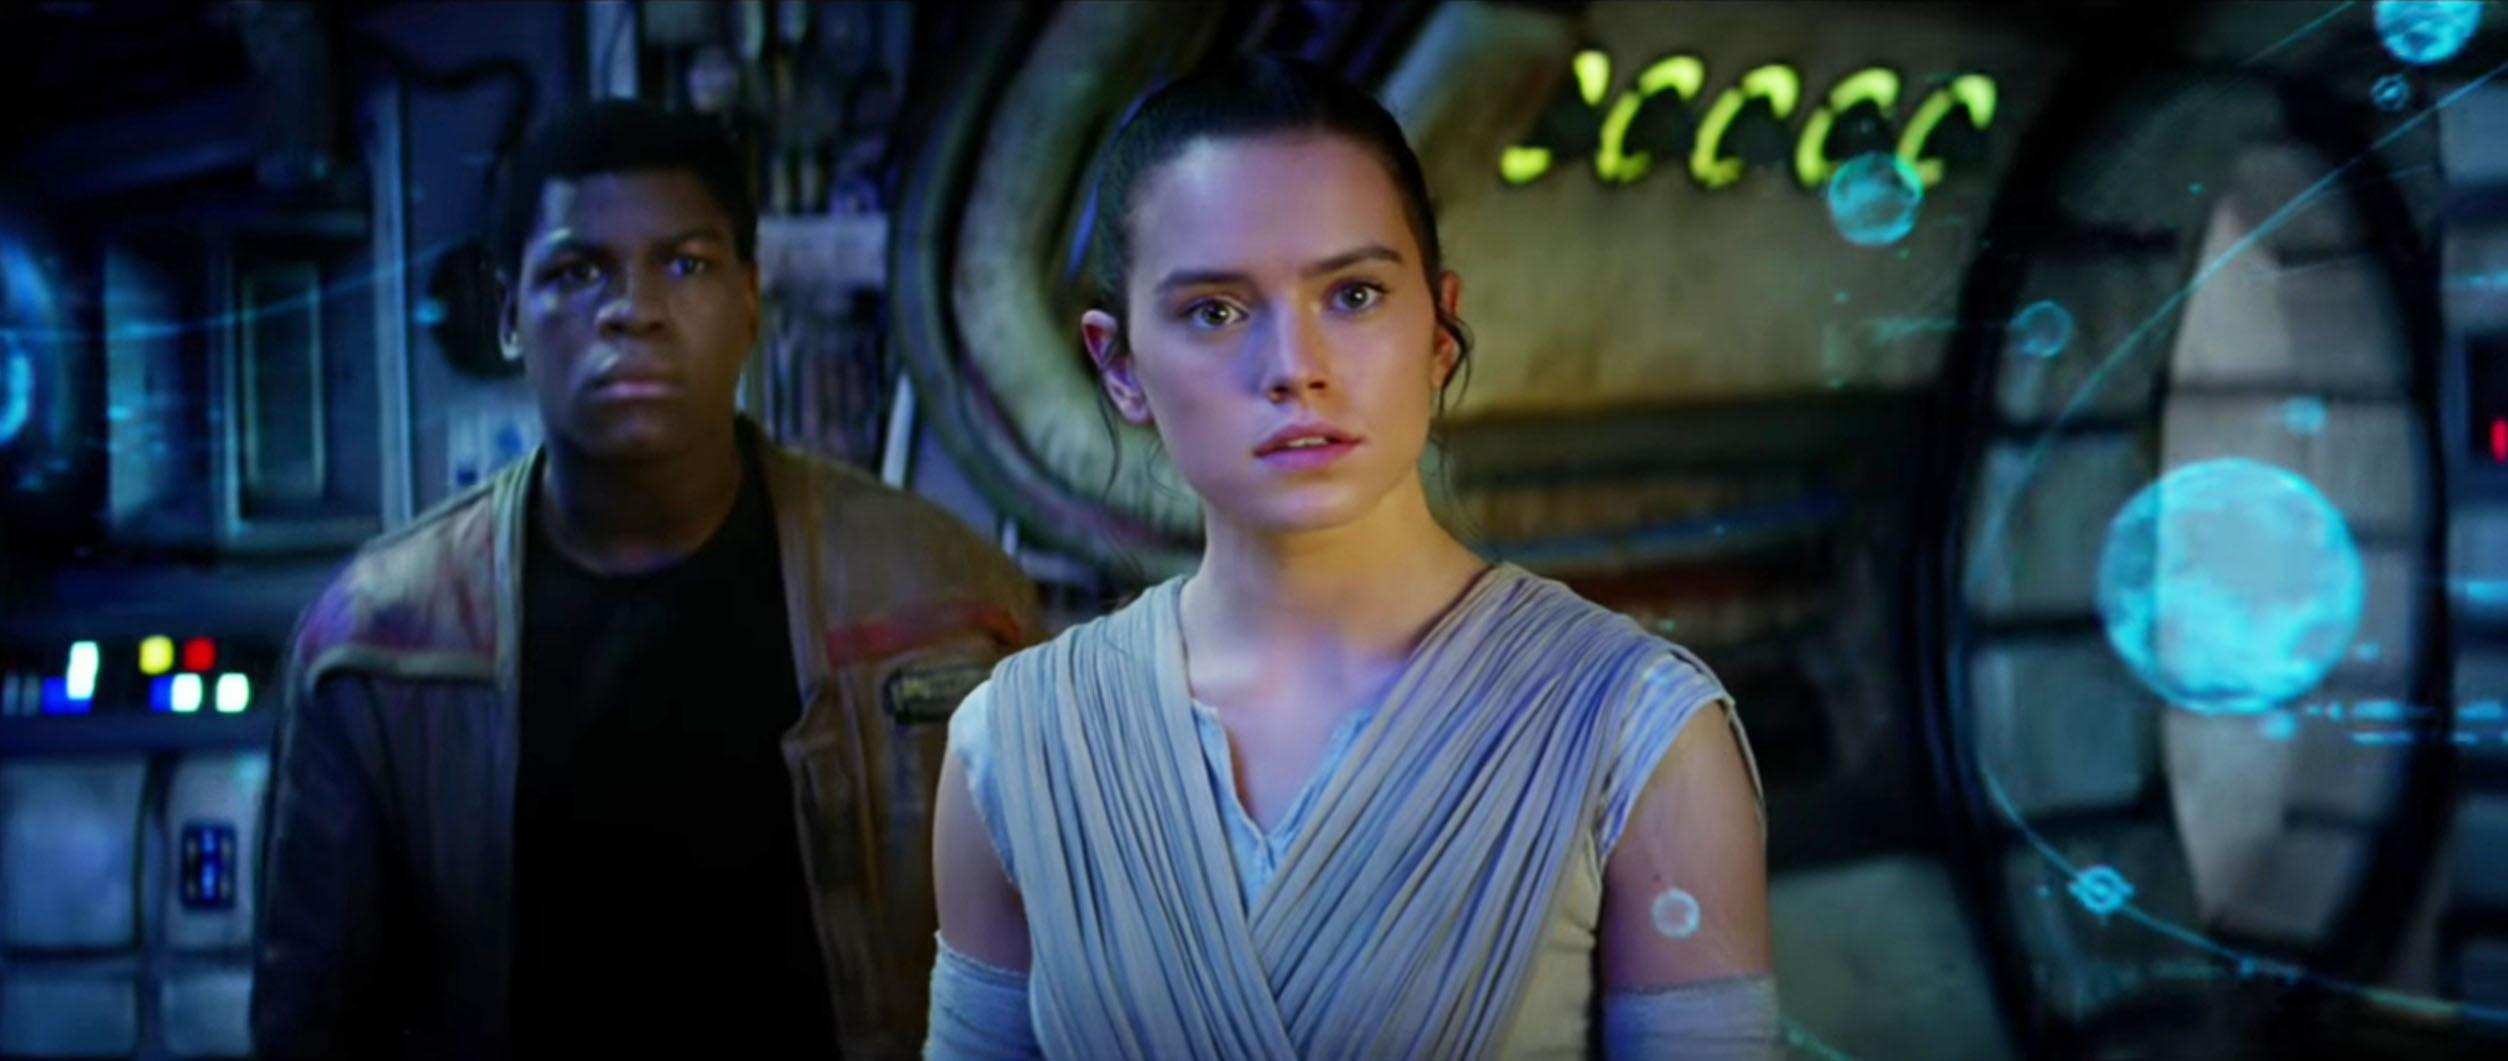 Why 'Star Wars' Trailer May Be J.J. Abrams' Real Masterpiece